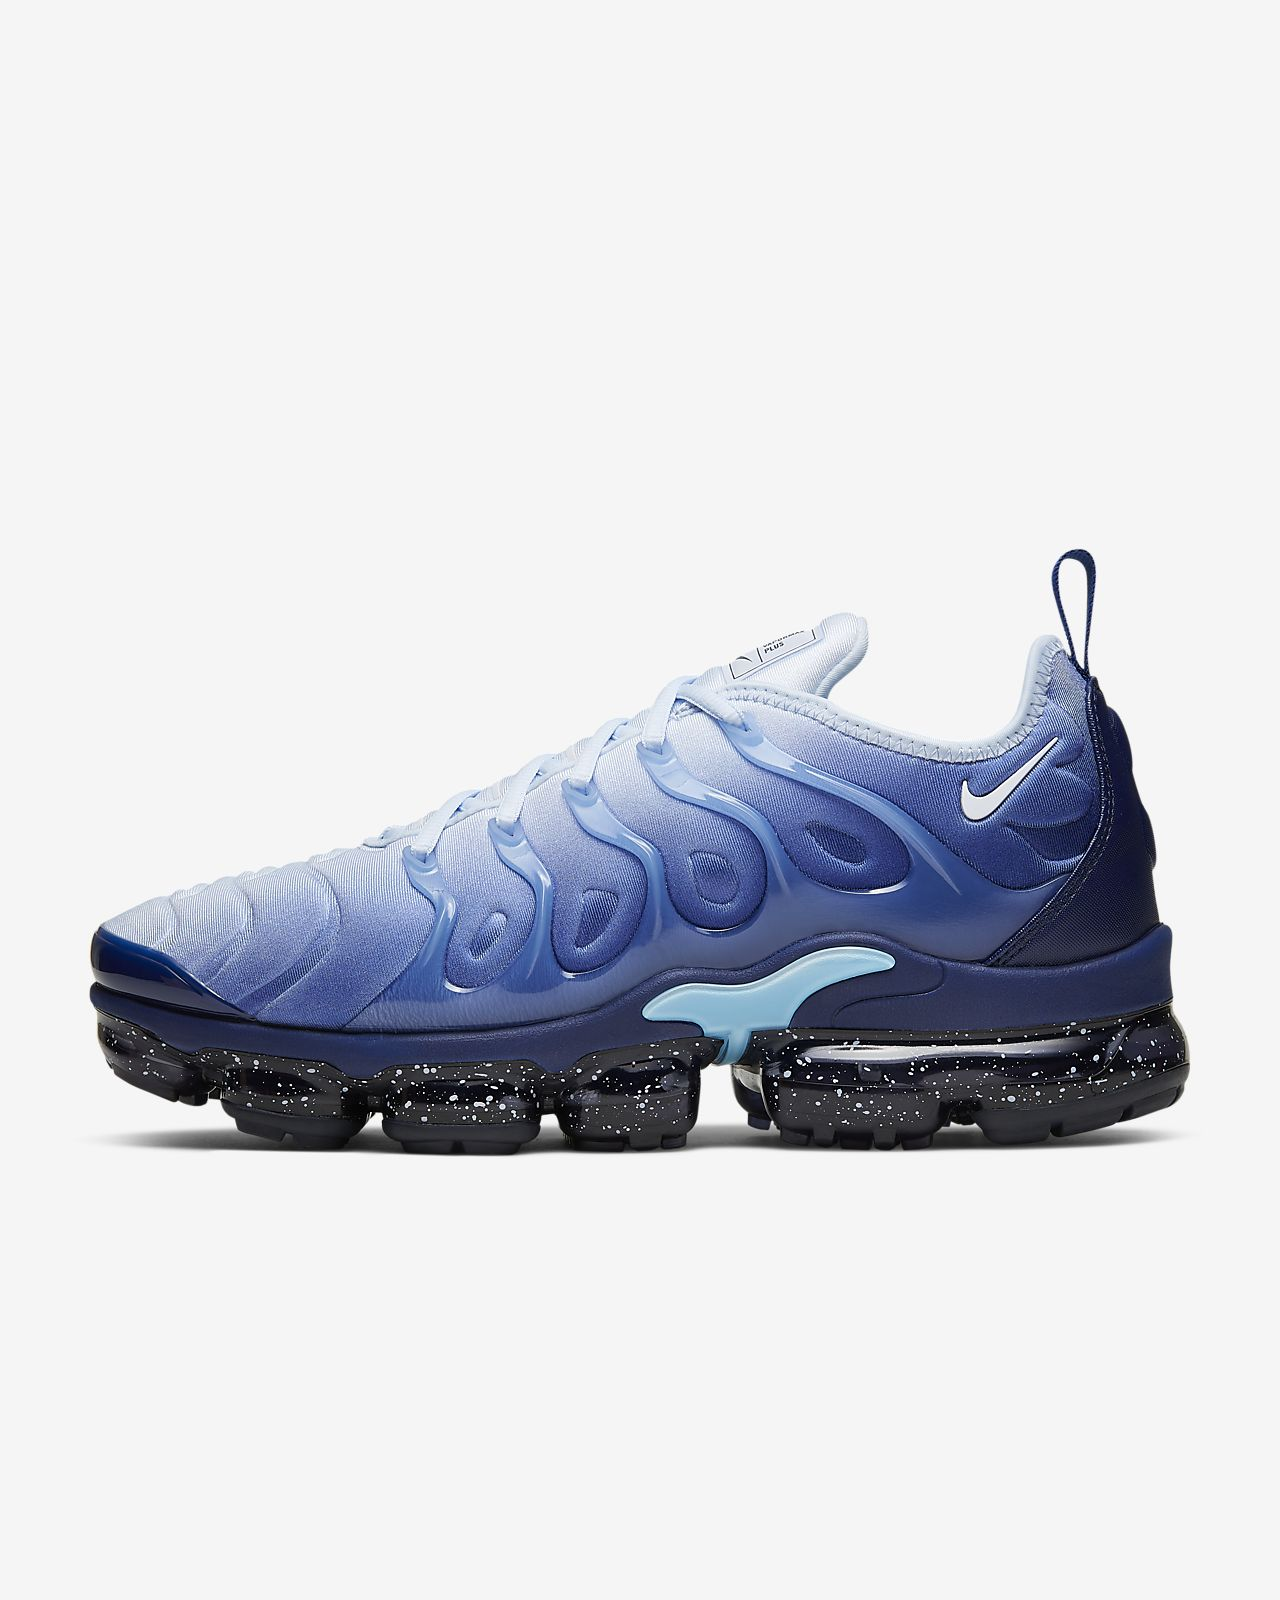 nice shoes first look closer at Nike Air VaporMax Plus Men's Shoe